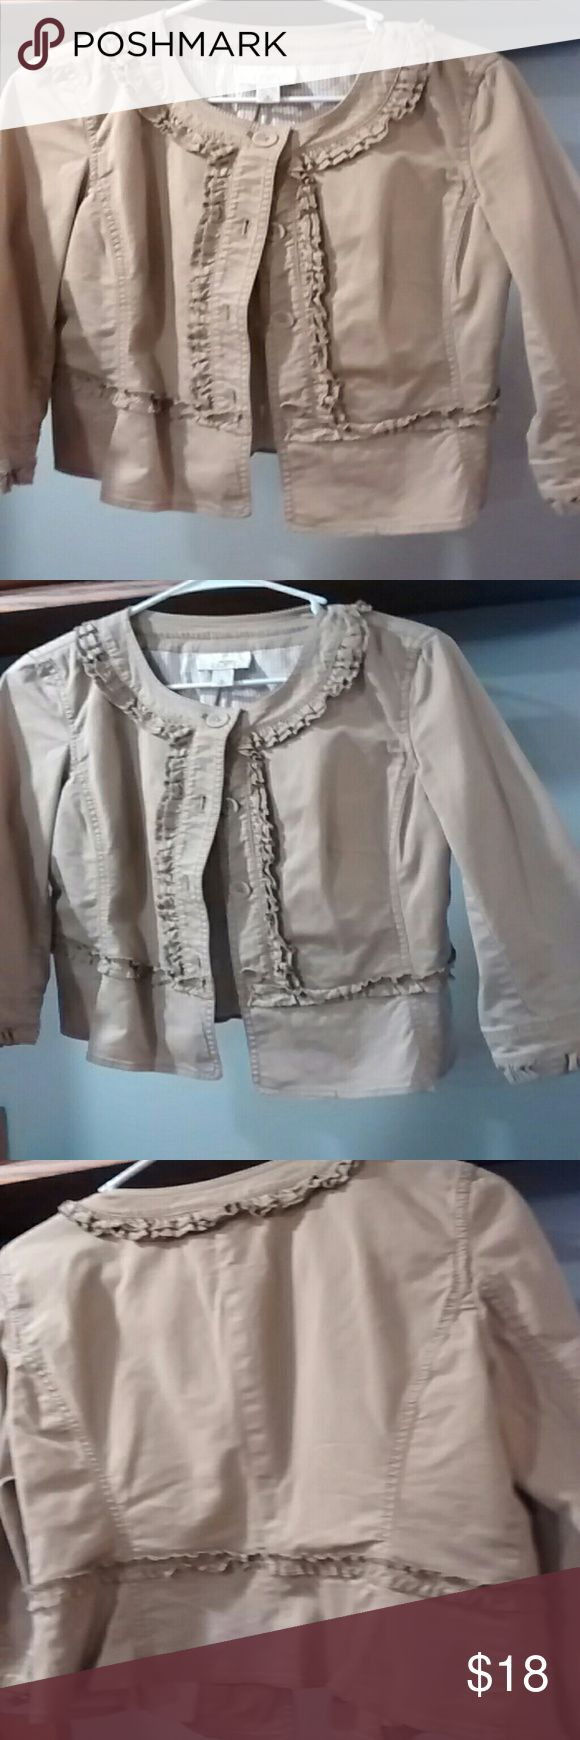 Ladies Casual Jacket Kaki and ruffles, perfect for any occasion!  Anne Taylor Loft. Ann Taylor Jackets & Coats